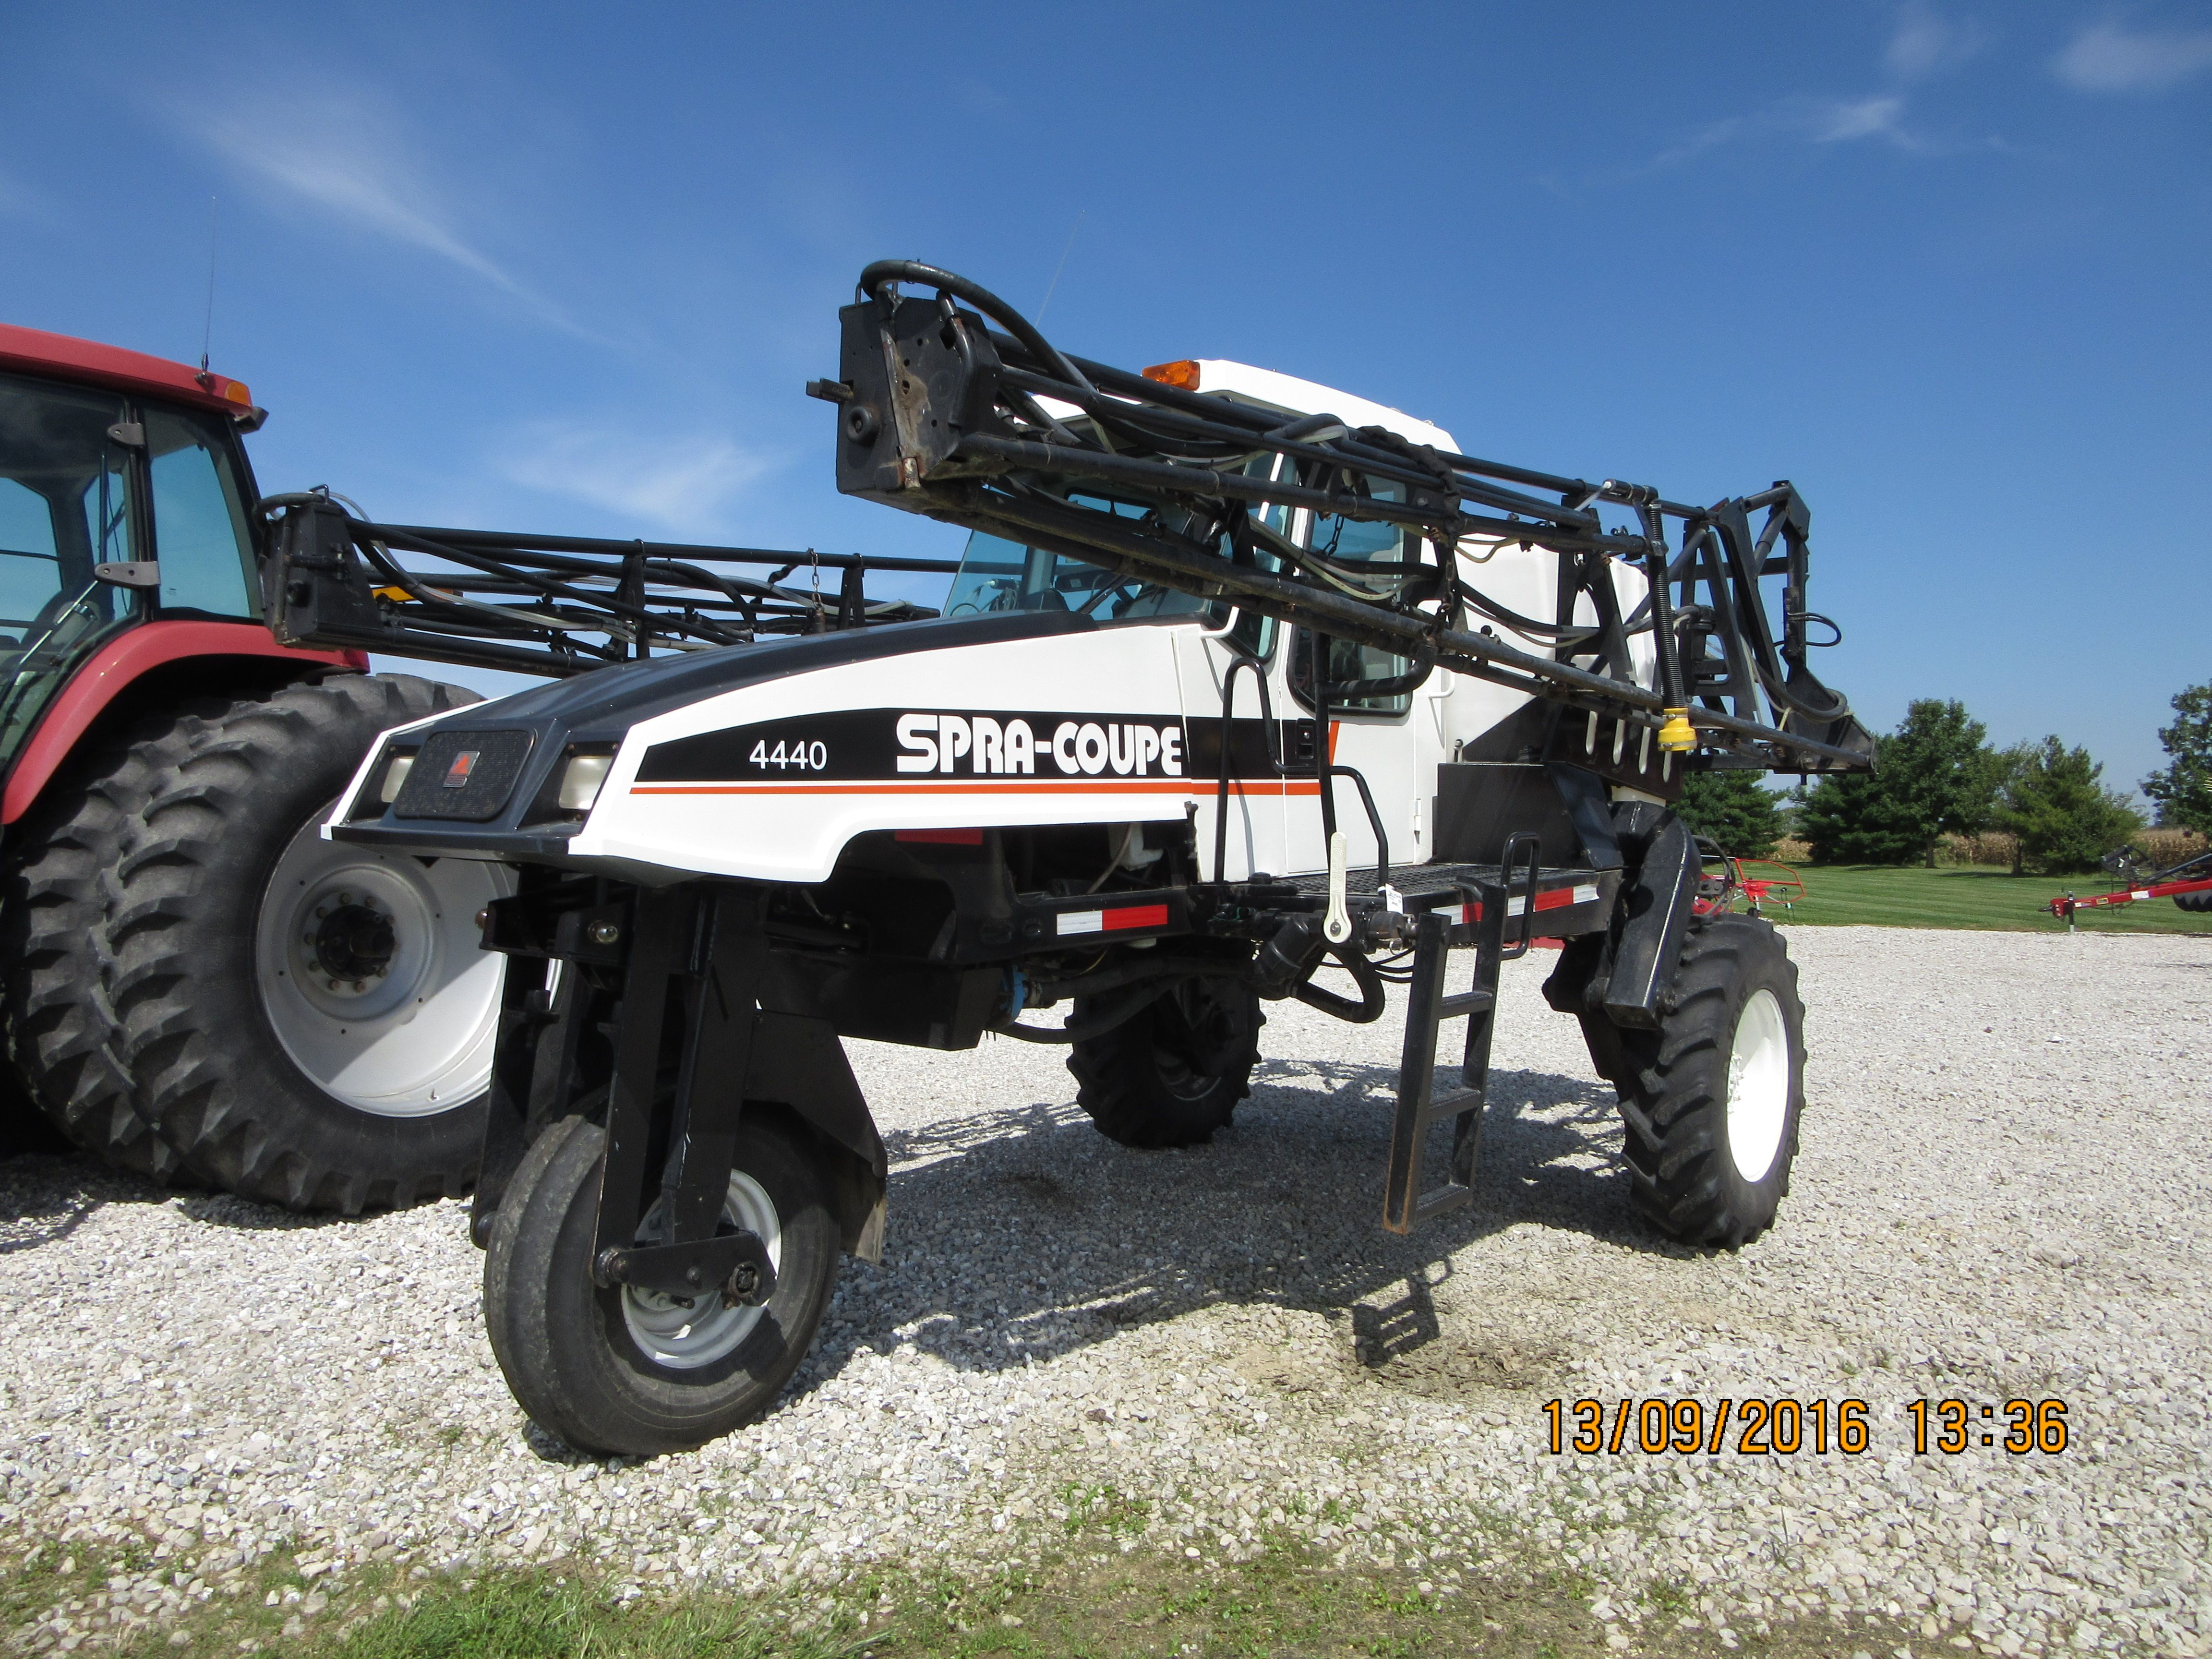 Spra Coupe 4440 sprayer